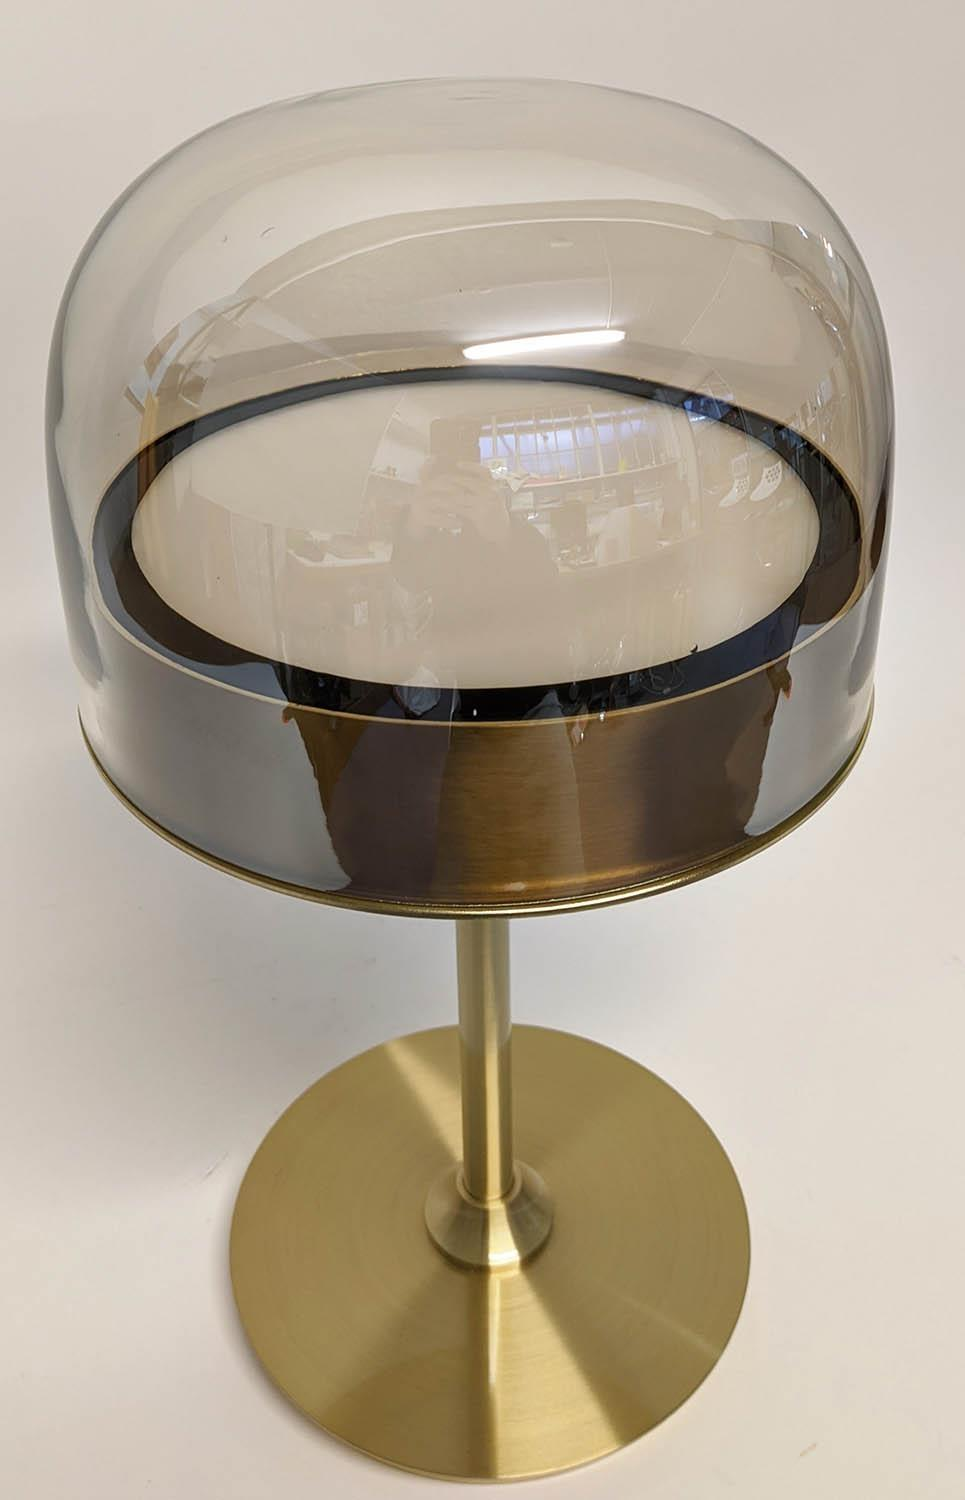 TABLE LAMP, 1950's Italian style, 45cm H. - Image 4 of 4